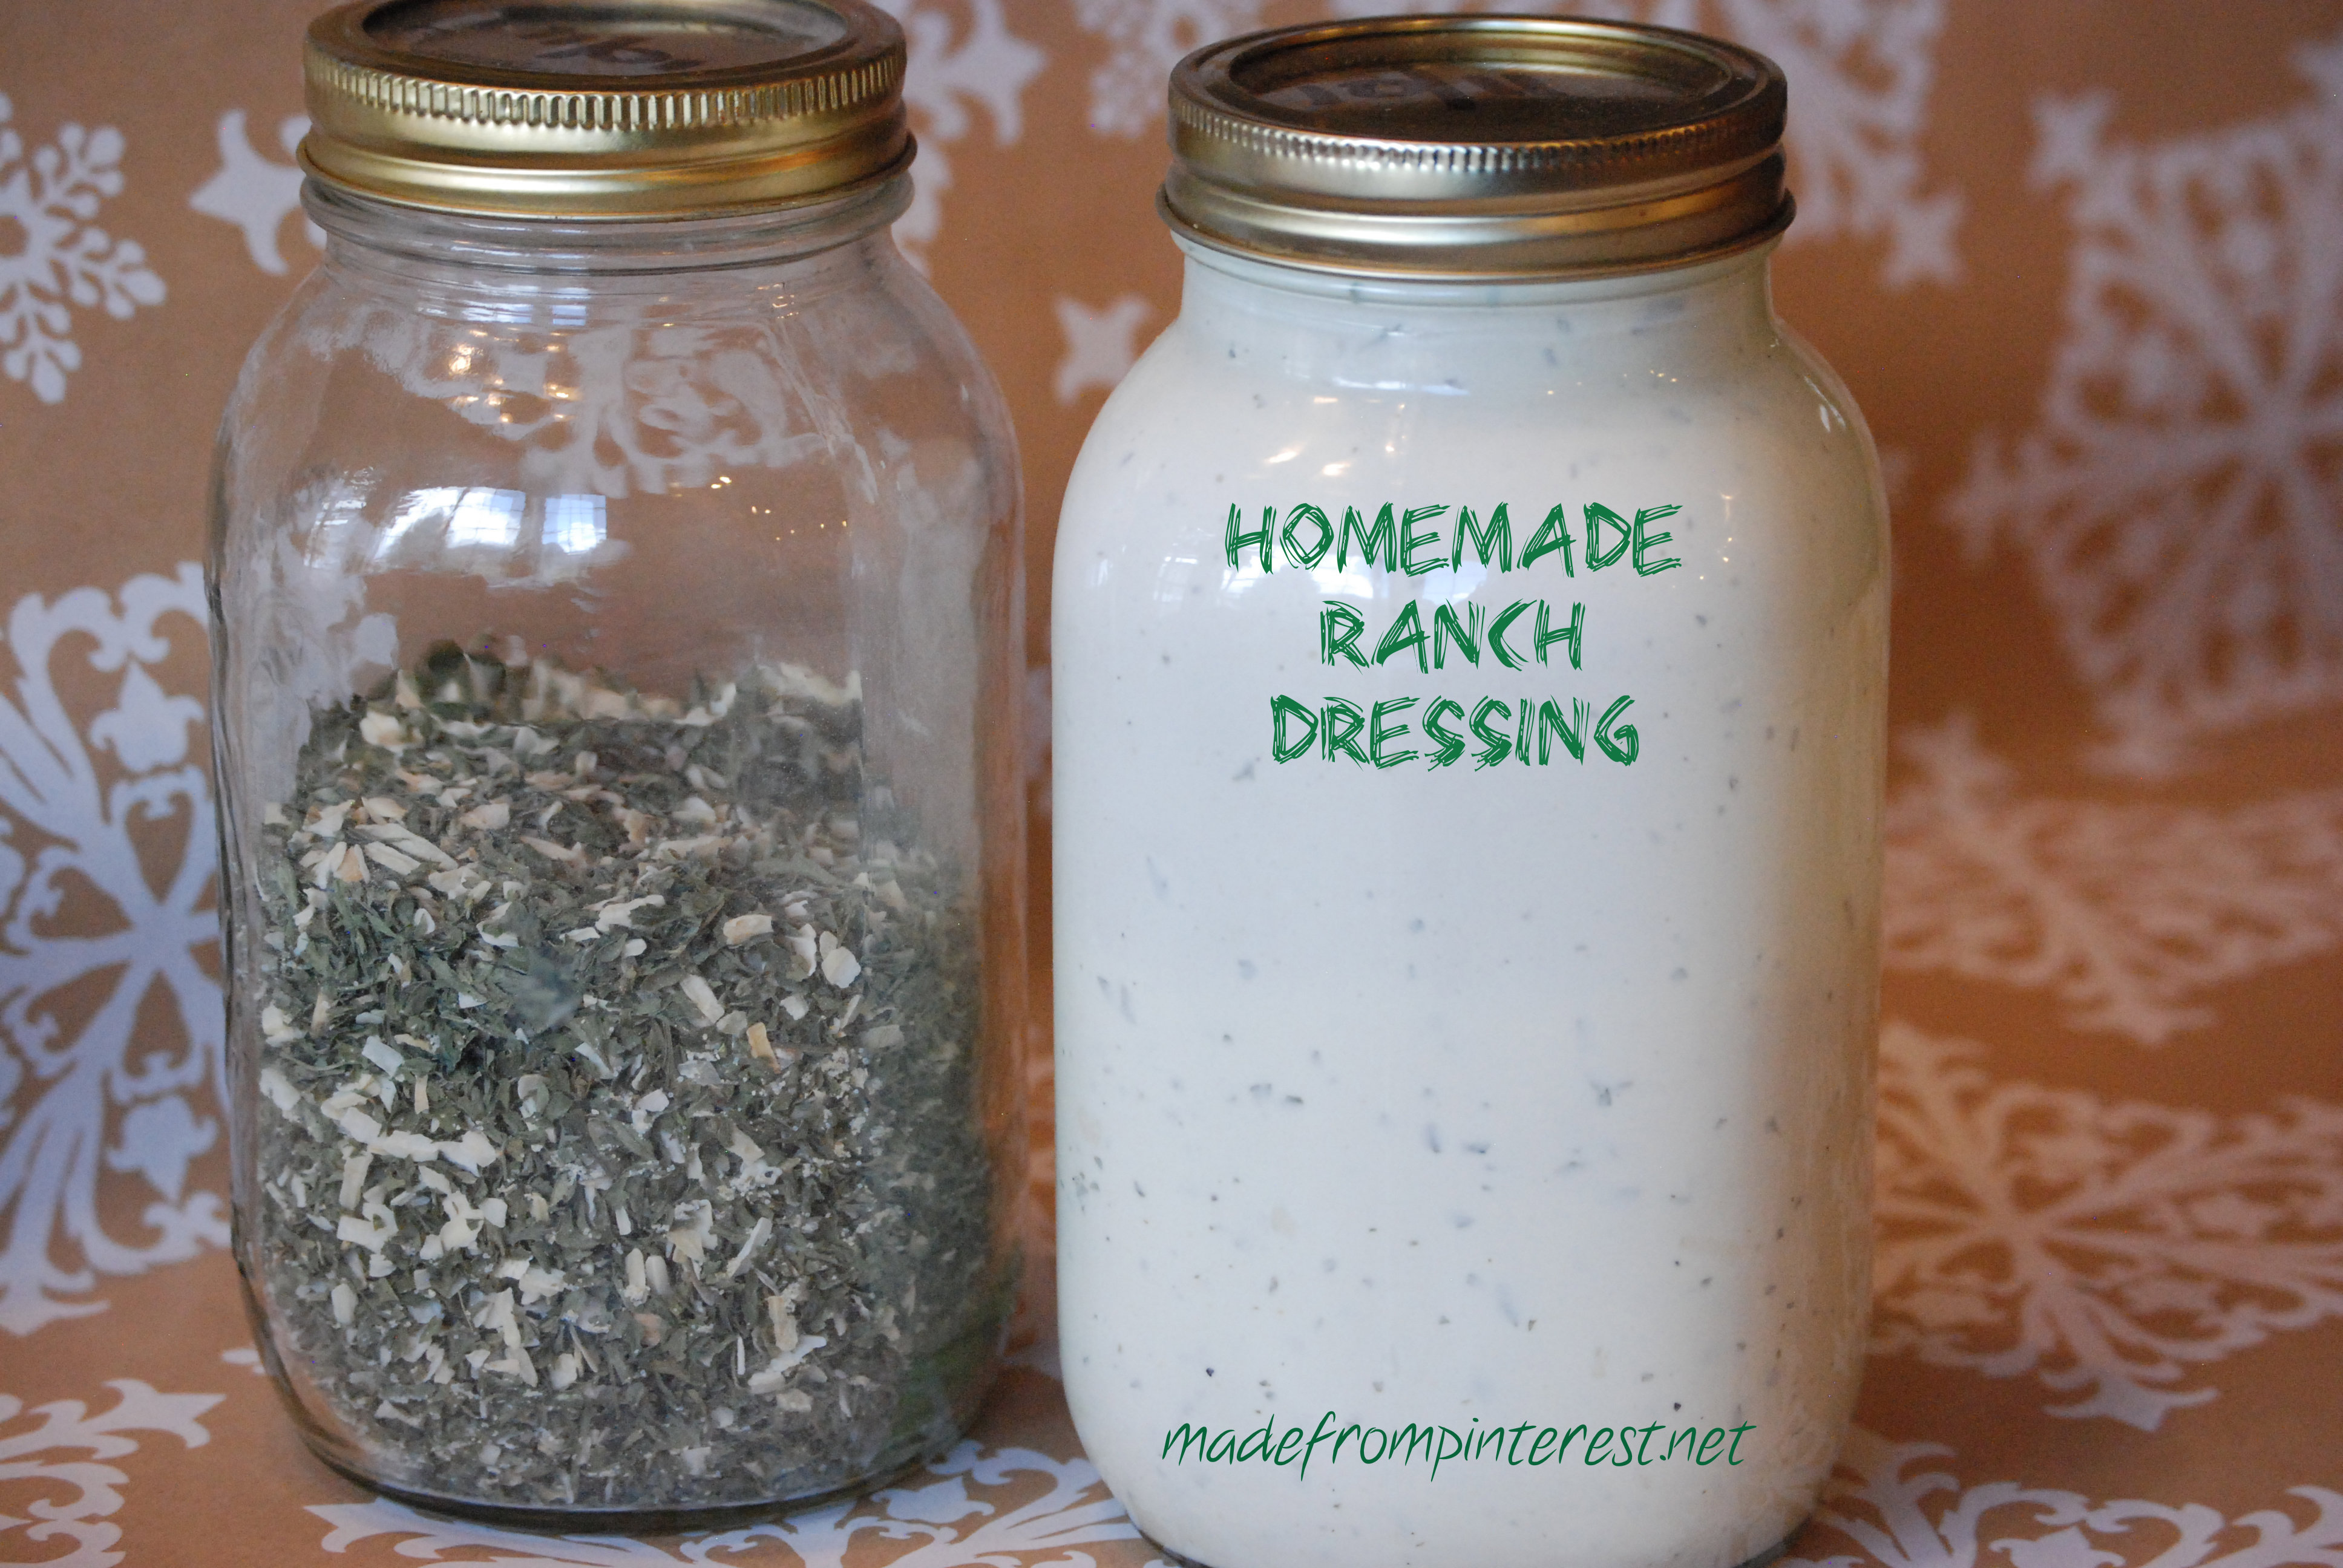 Homemade Ranch Dressing Recipe - Made From Pinterest